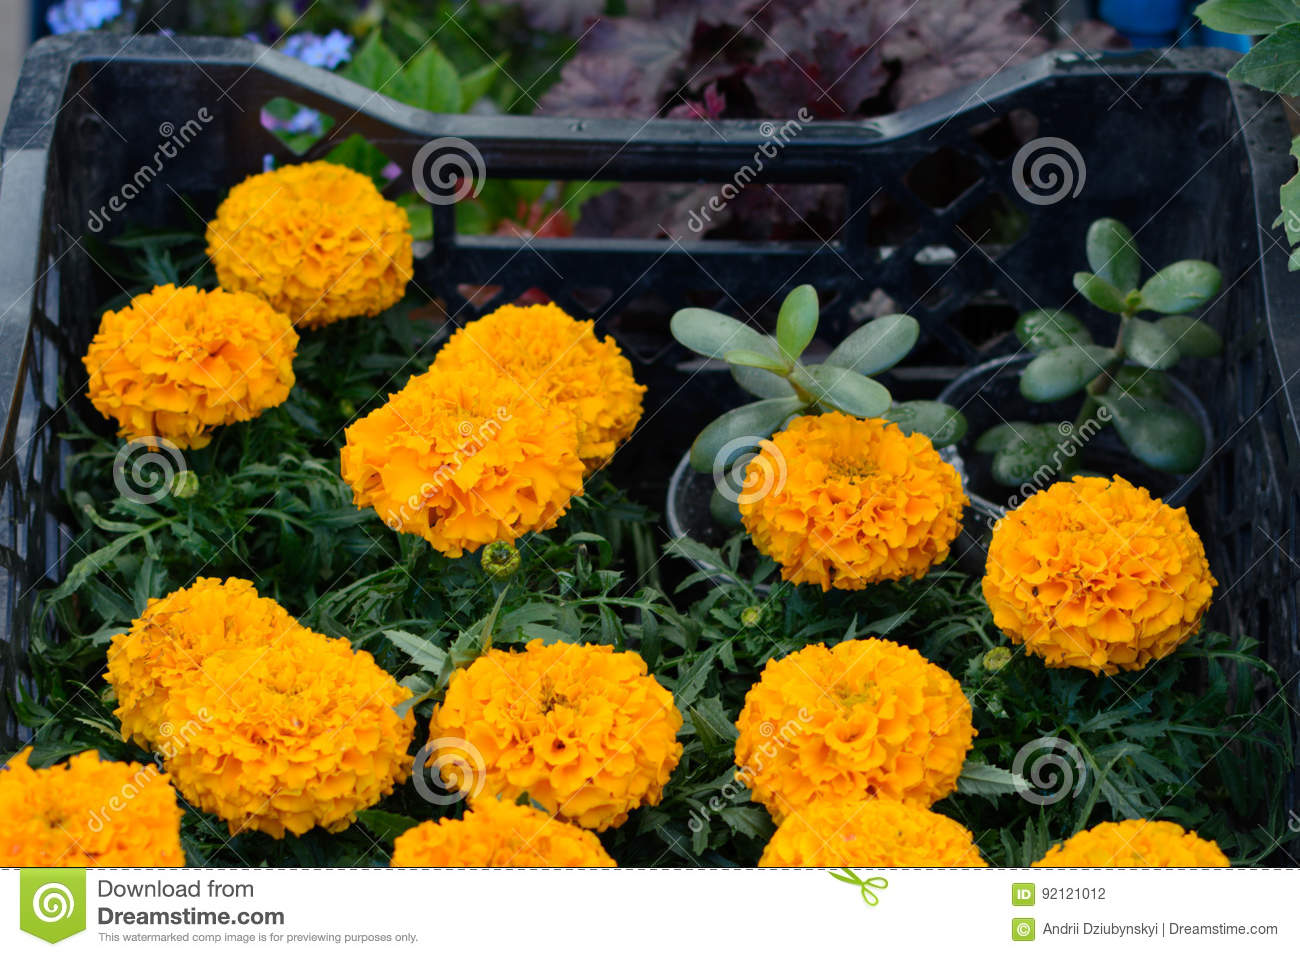 a9335c158ac Marigold Seedlings In A Box For Sale On The Market Stock Photo ...